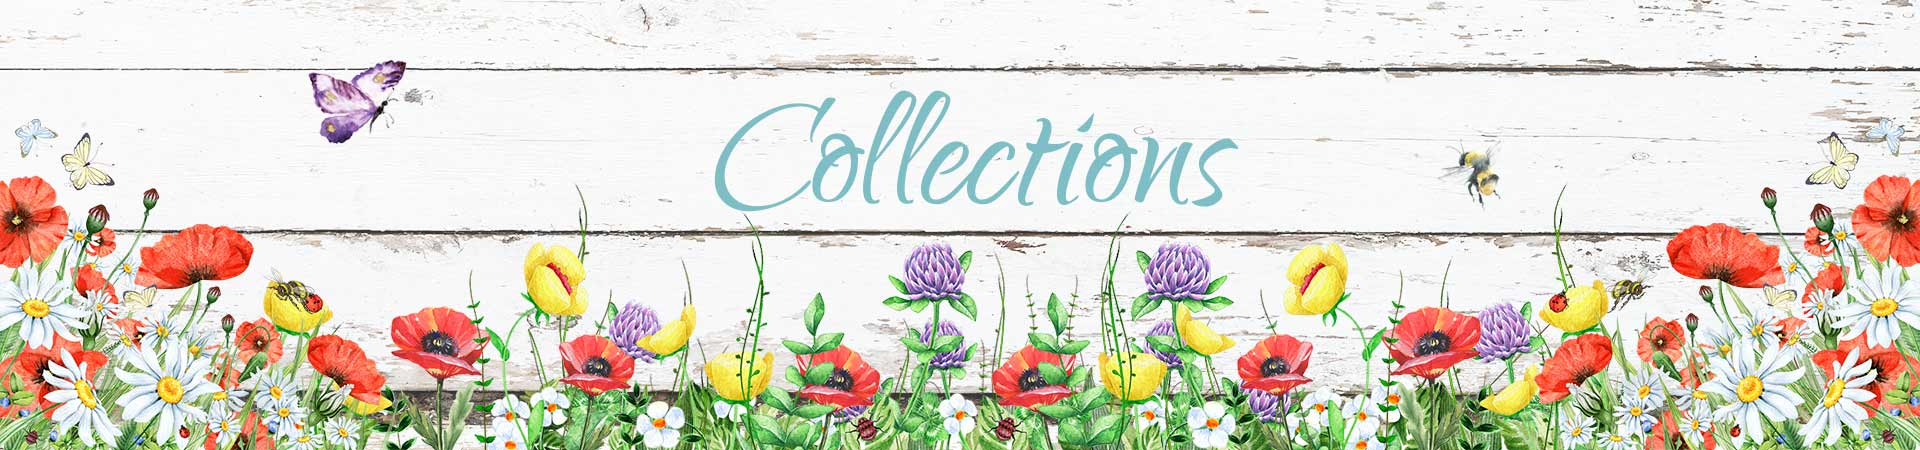 Seed collections header